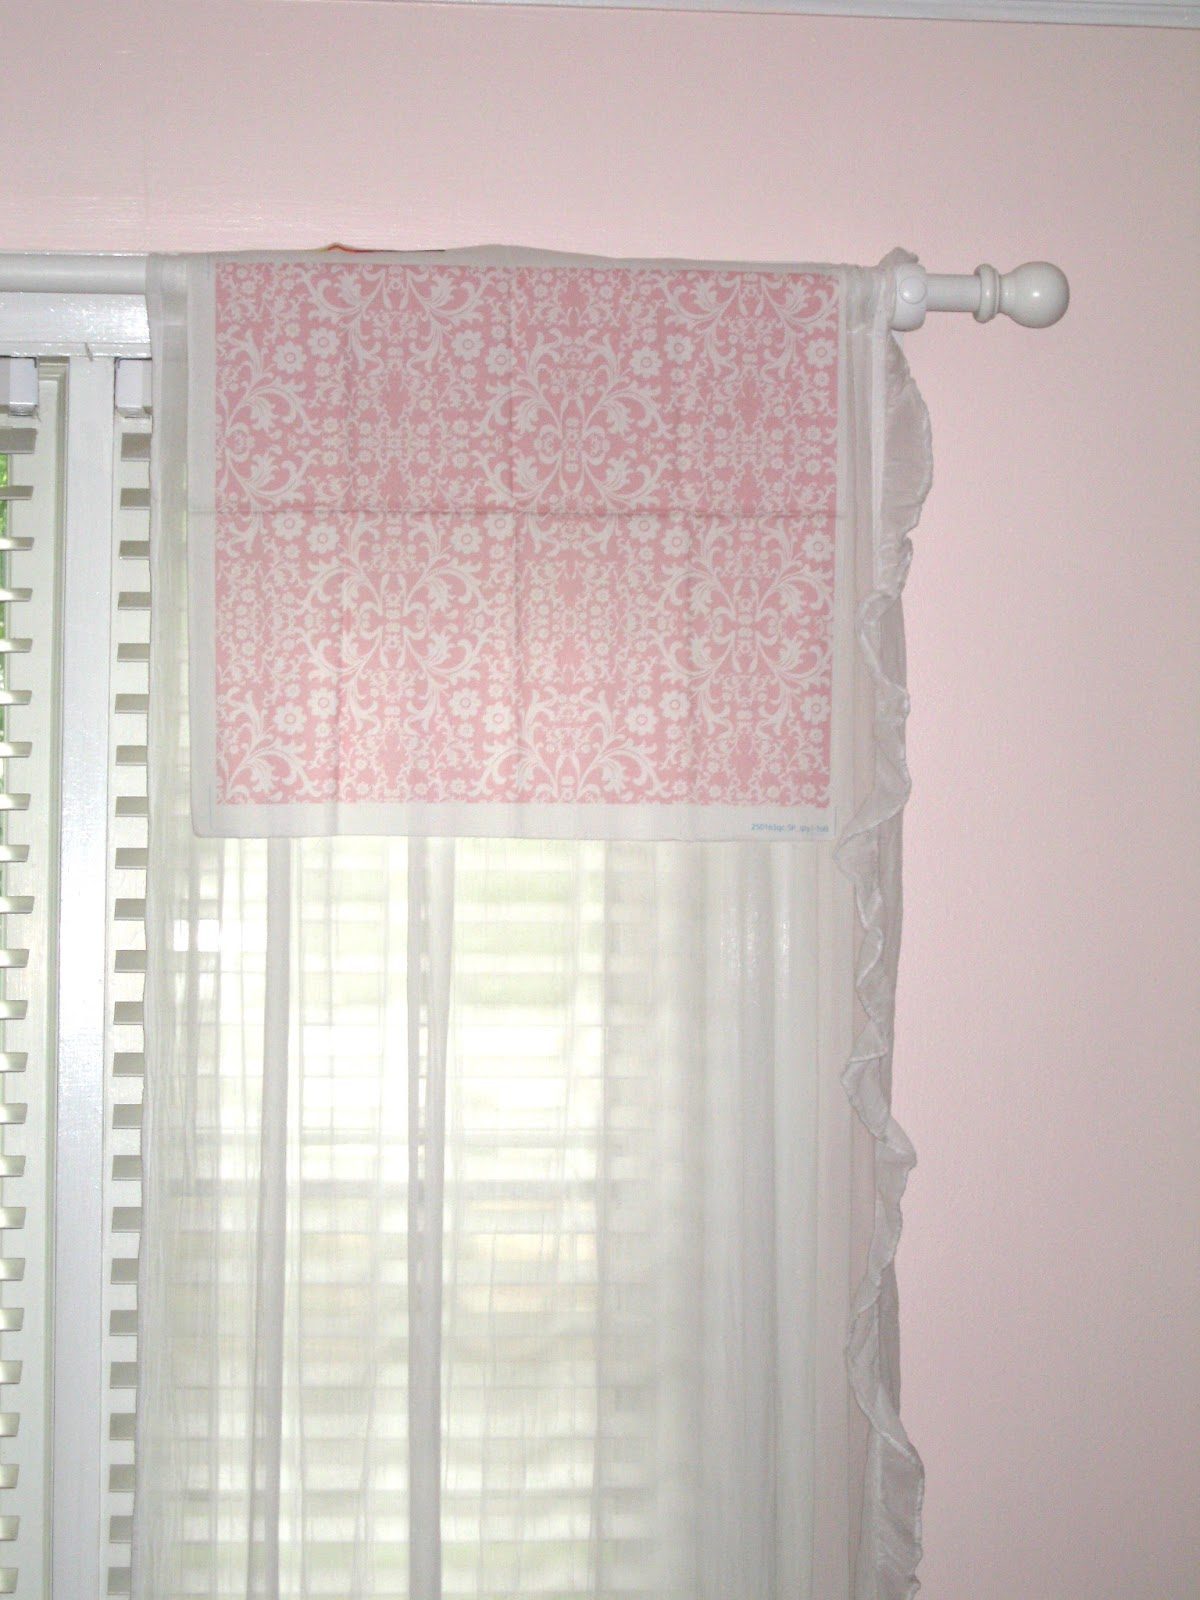 Curtain Urban Dictionary Decorate Our Home With Beautiful Curtains